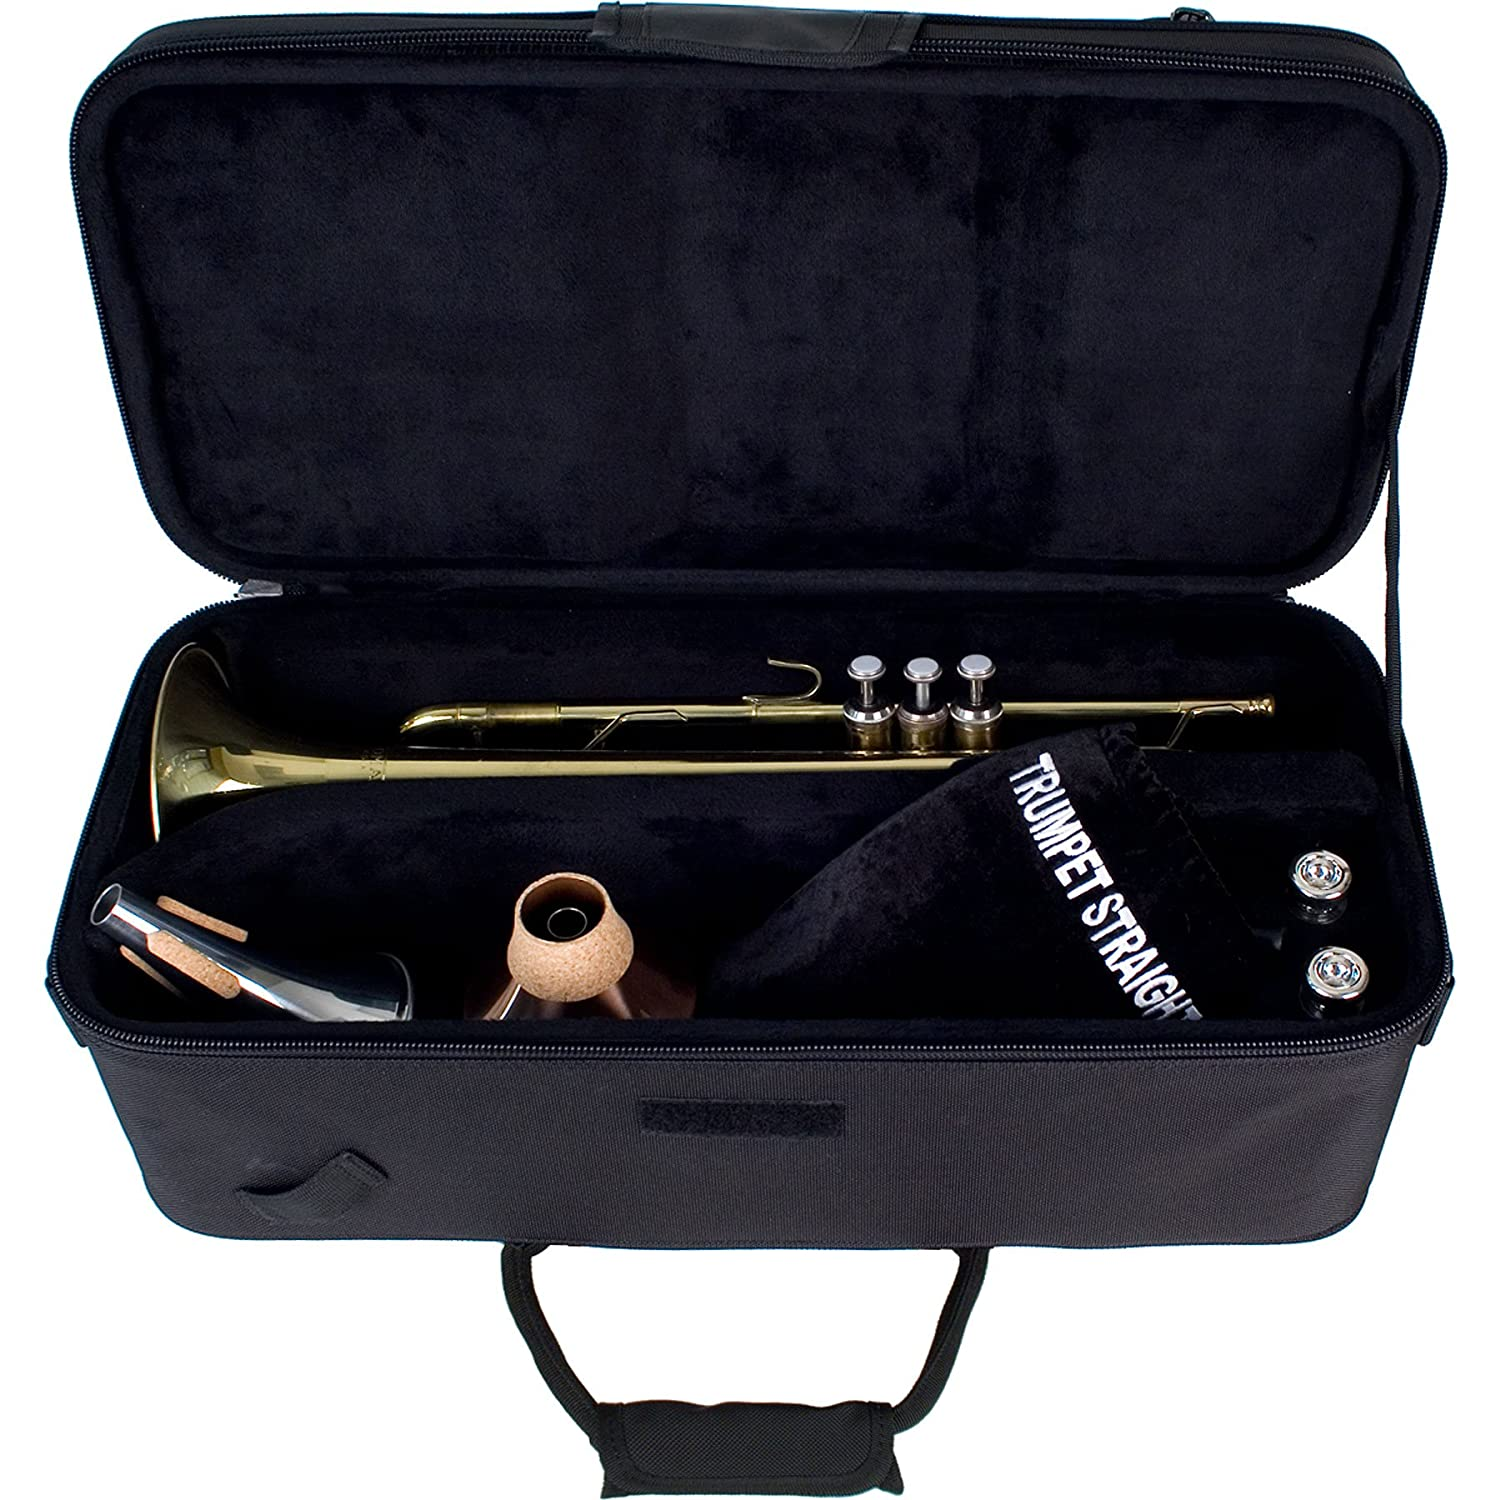 Protec Trumpet PRO PAC Trumpet Case with Mute Section